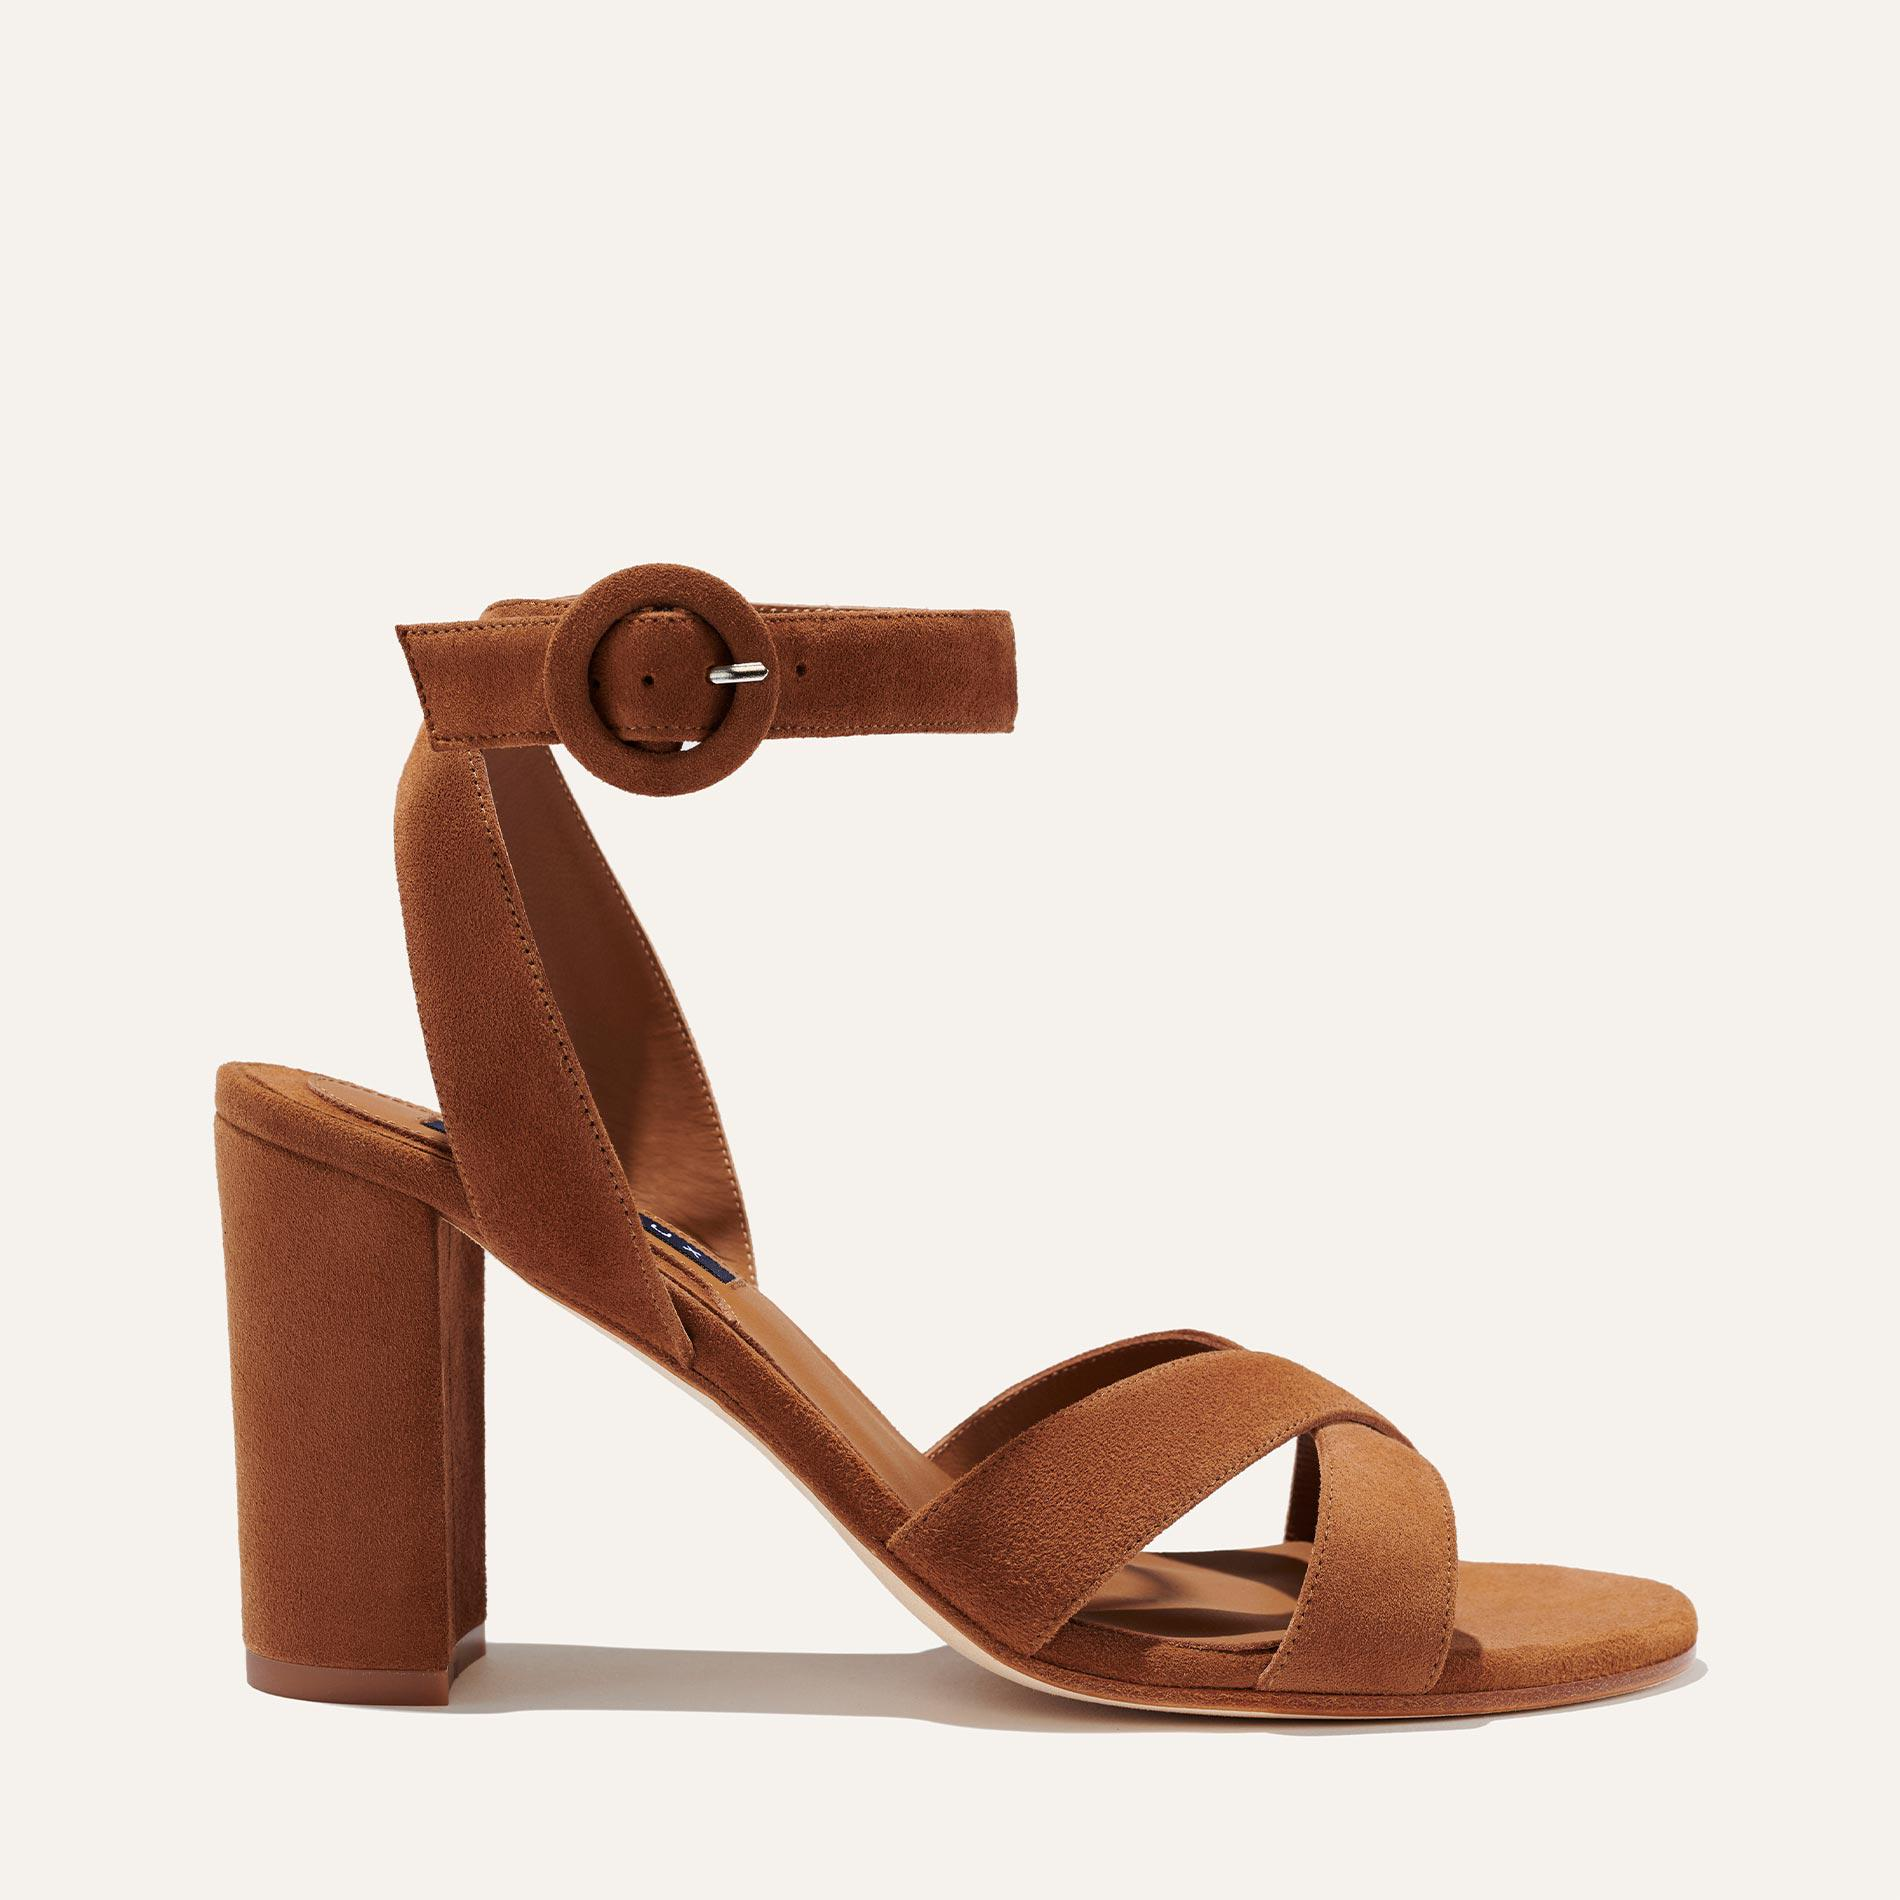 The Uptown Sandal - Chestnut Suede